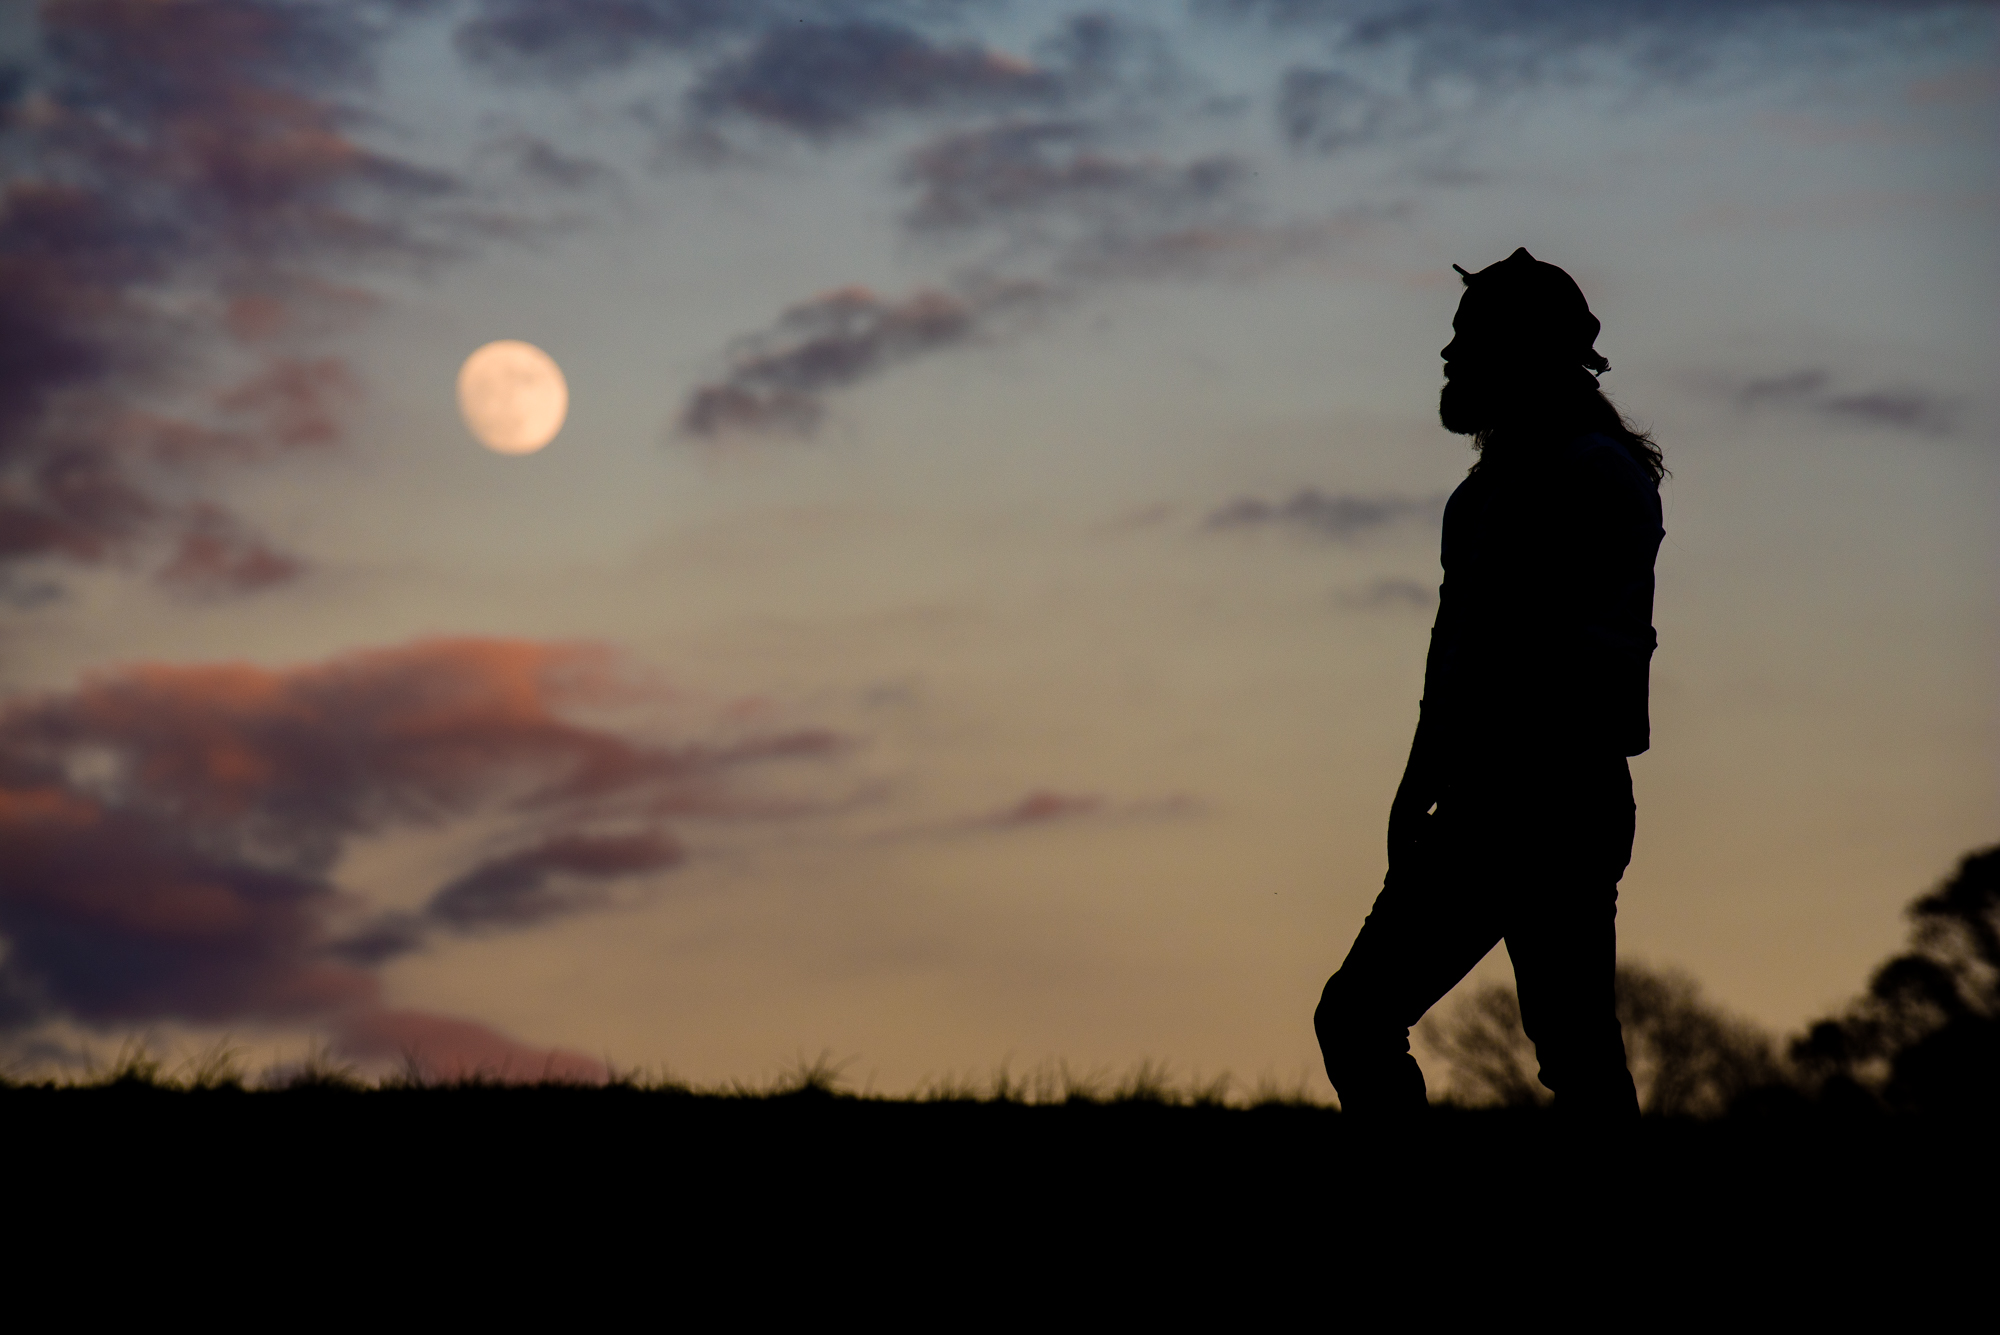 silhouette of man on mountain with the moon